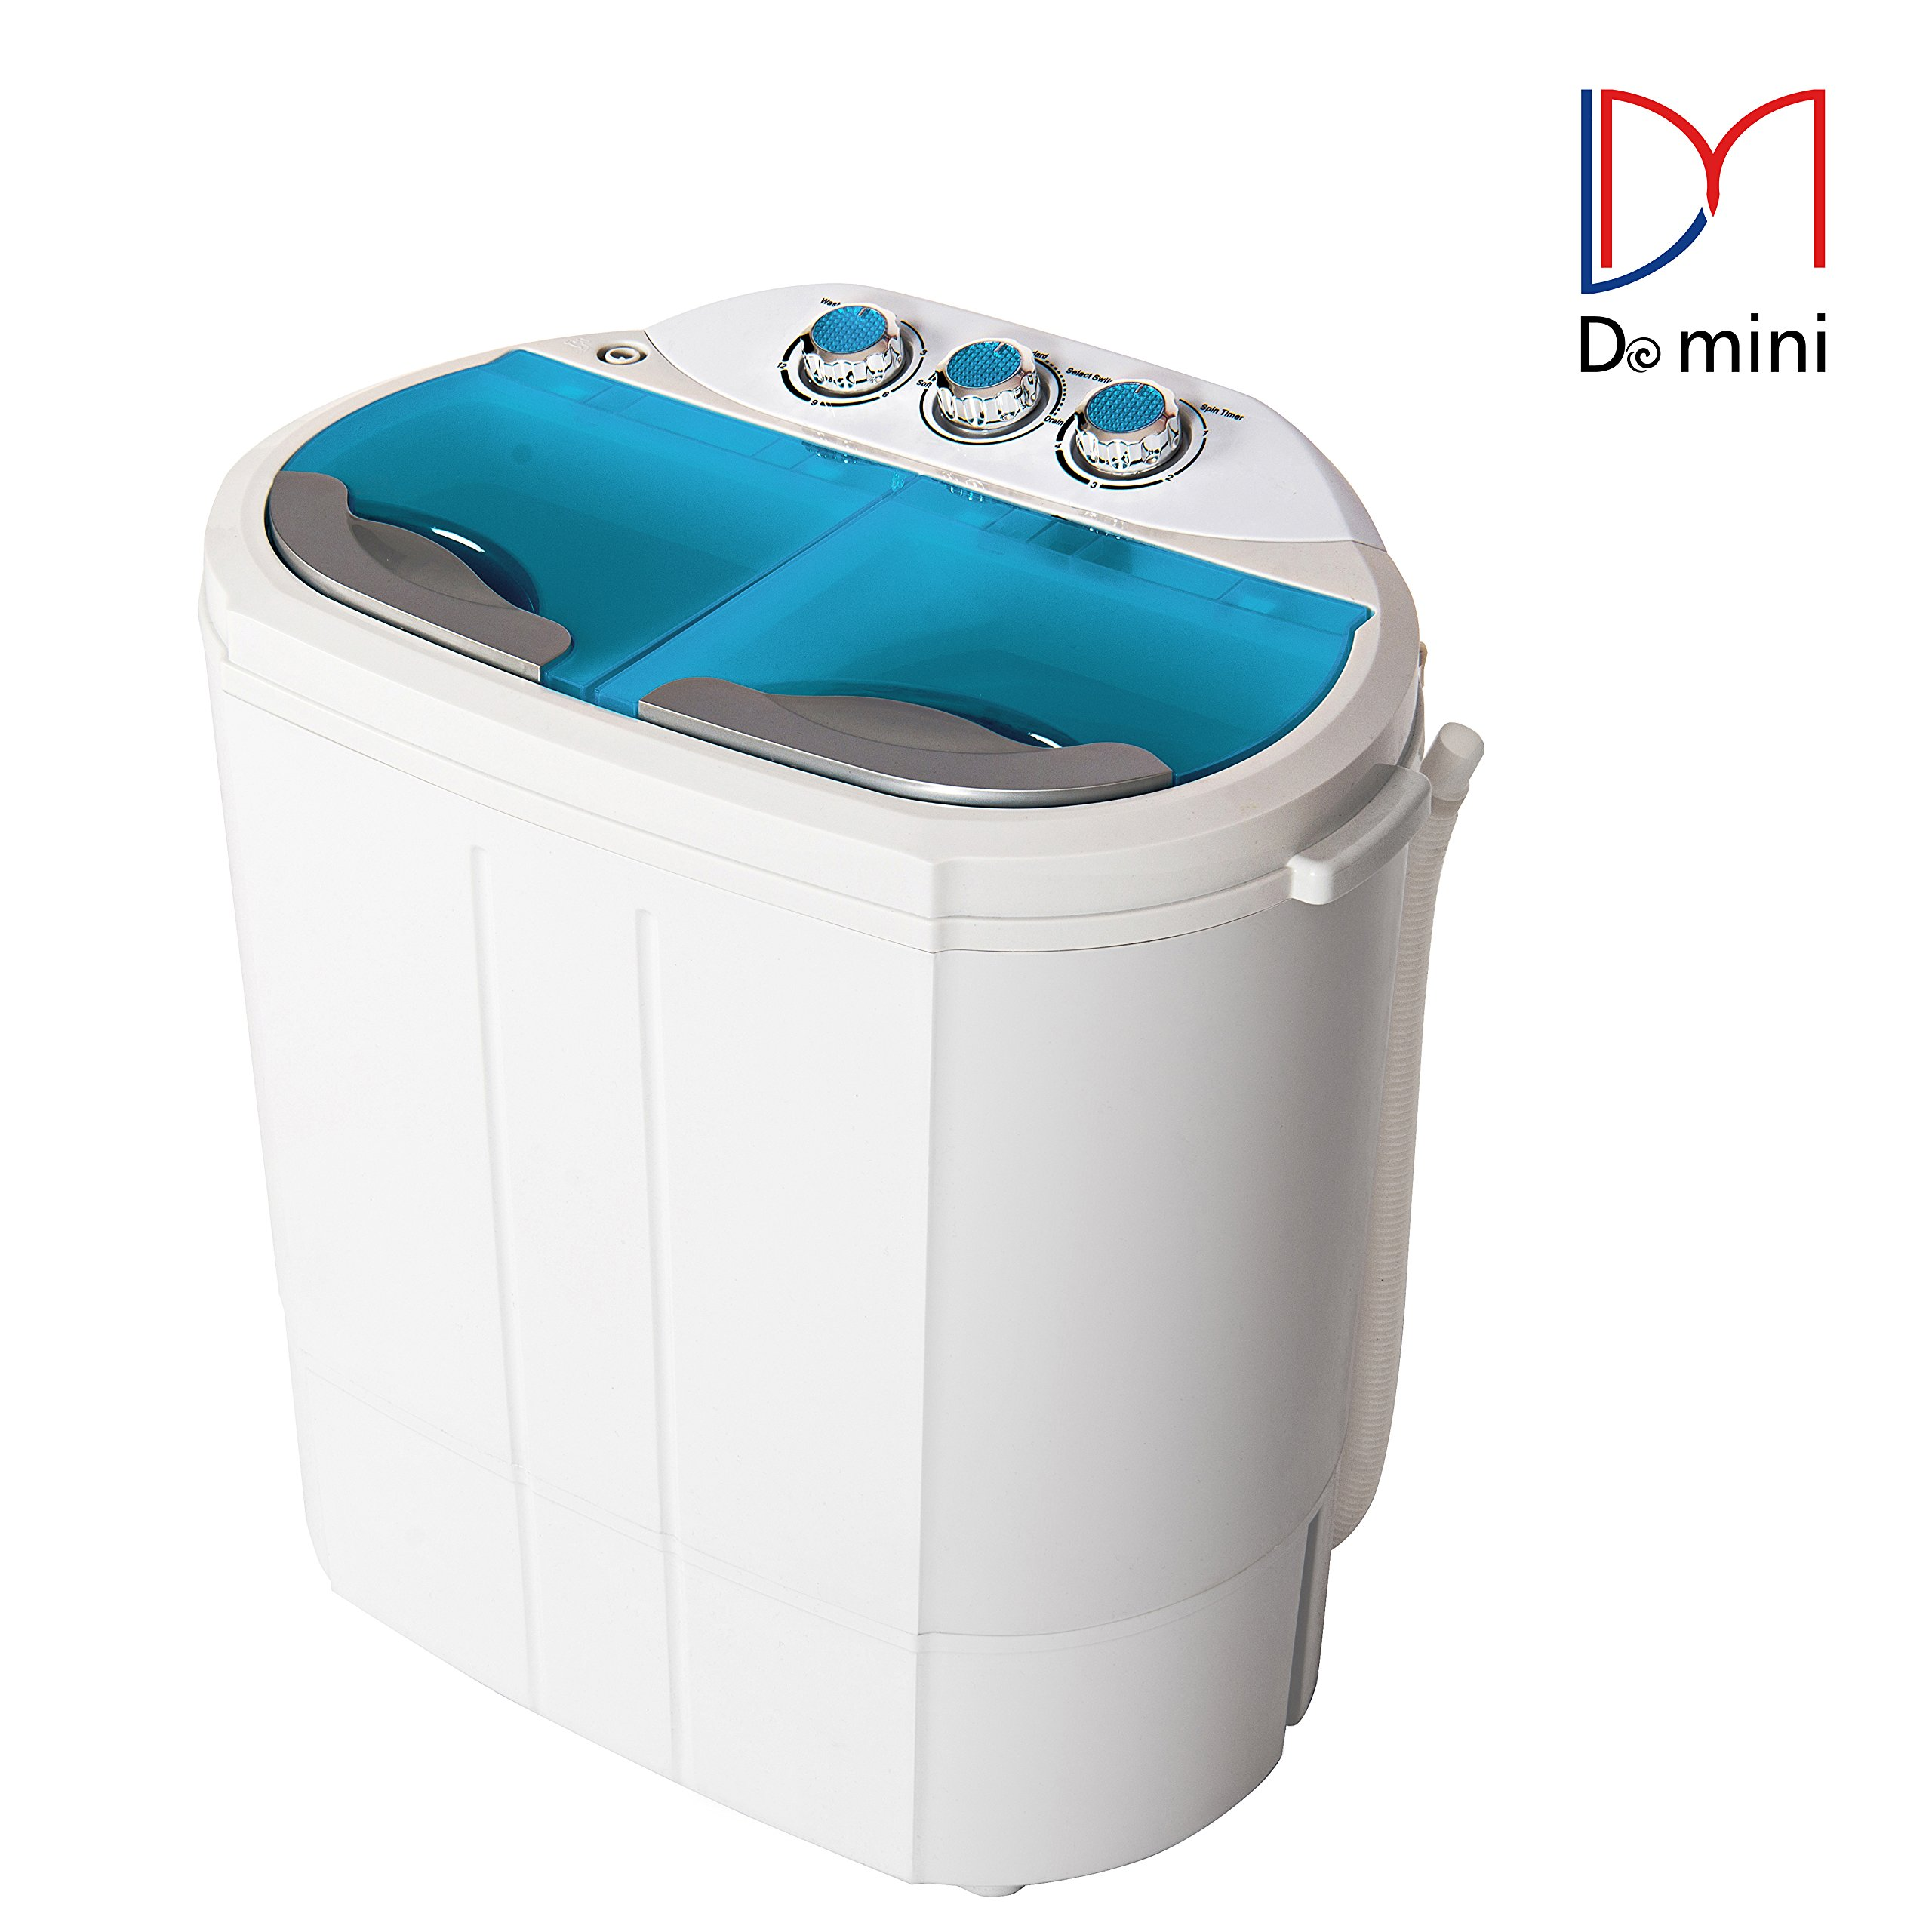 Do mini Portable Compact Twin Tub 9.8Ibs Capacity Washing Machine and Spin Dryer